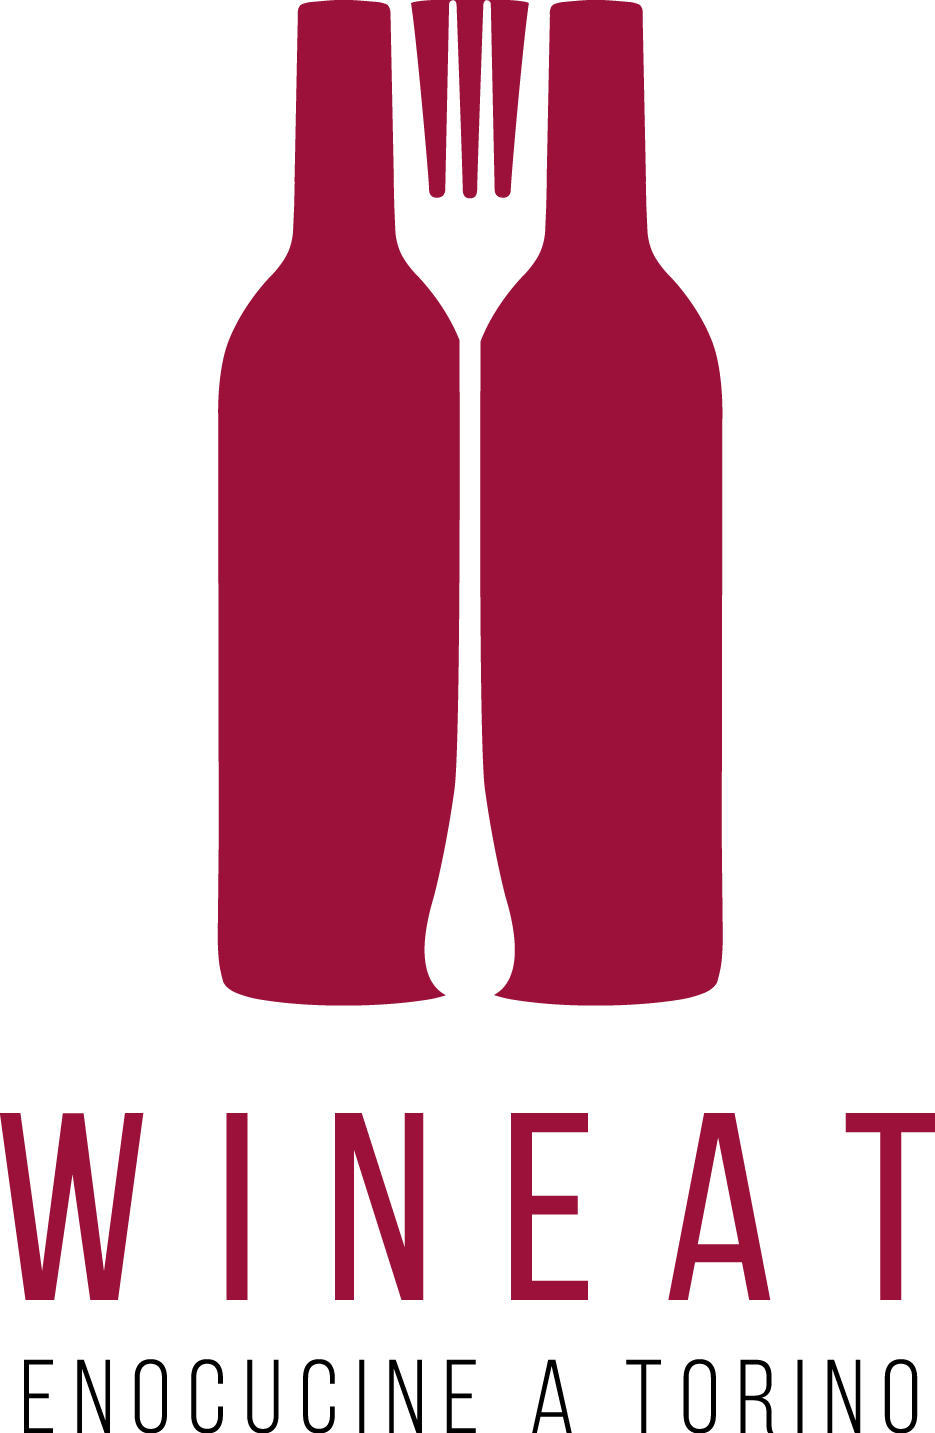 LogoWineat